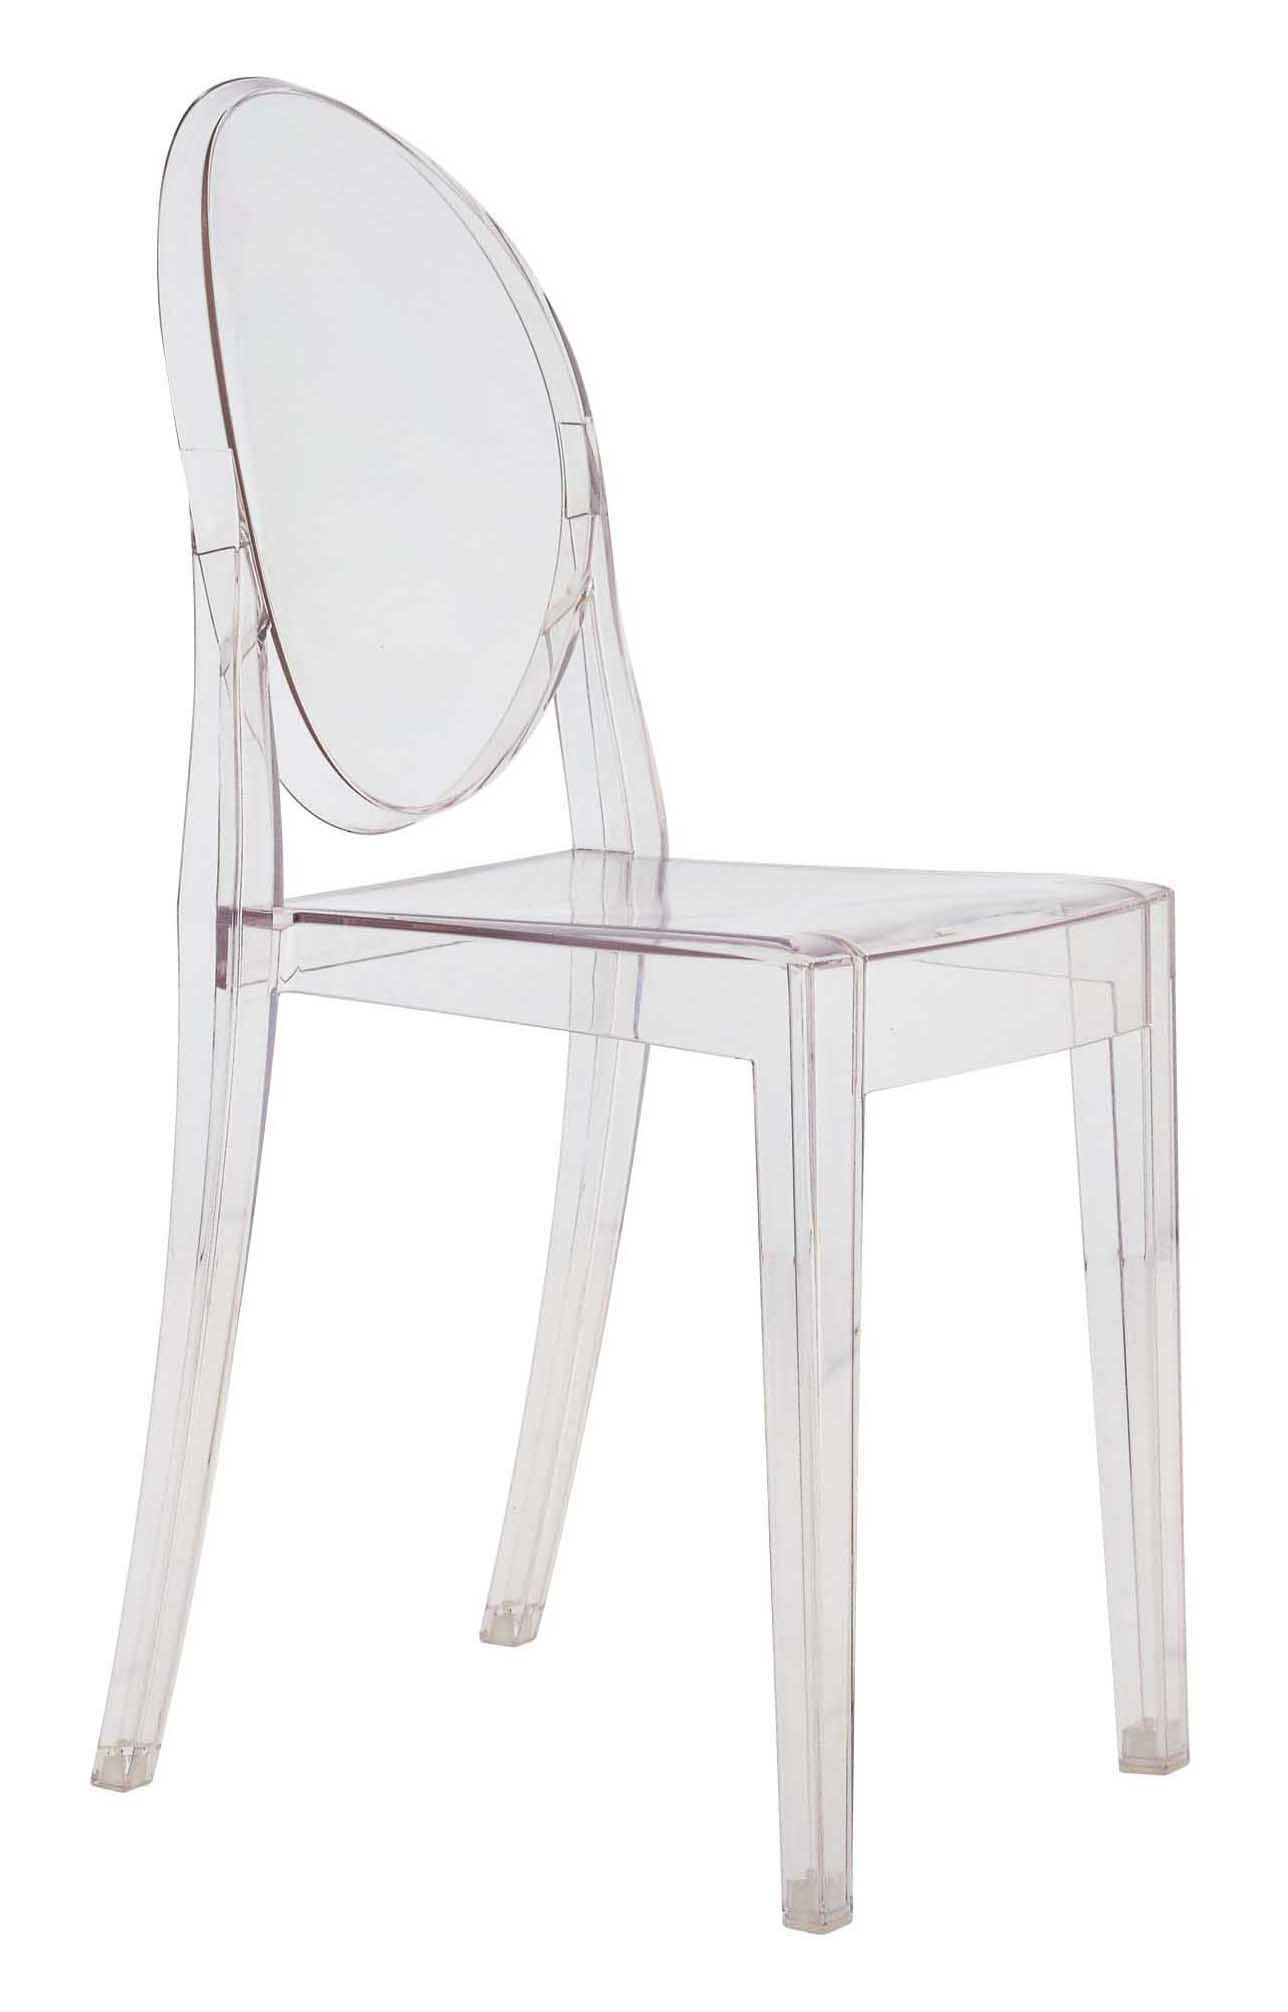 Scopri Sedia Victoria Ghost Trasparente di Kartell Made  : 782c9bd9 acc2 4013 88c5 2df2f119169a from www.madeindesign.it size 1288 x 2012 jpeg 57kB